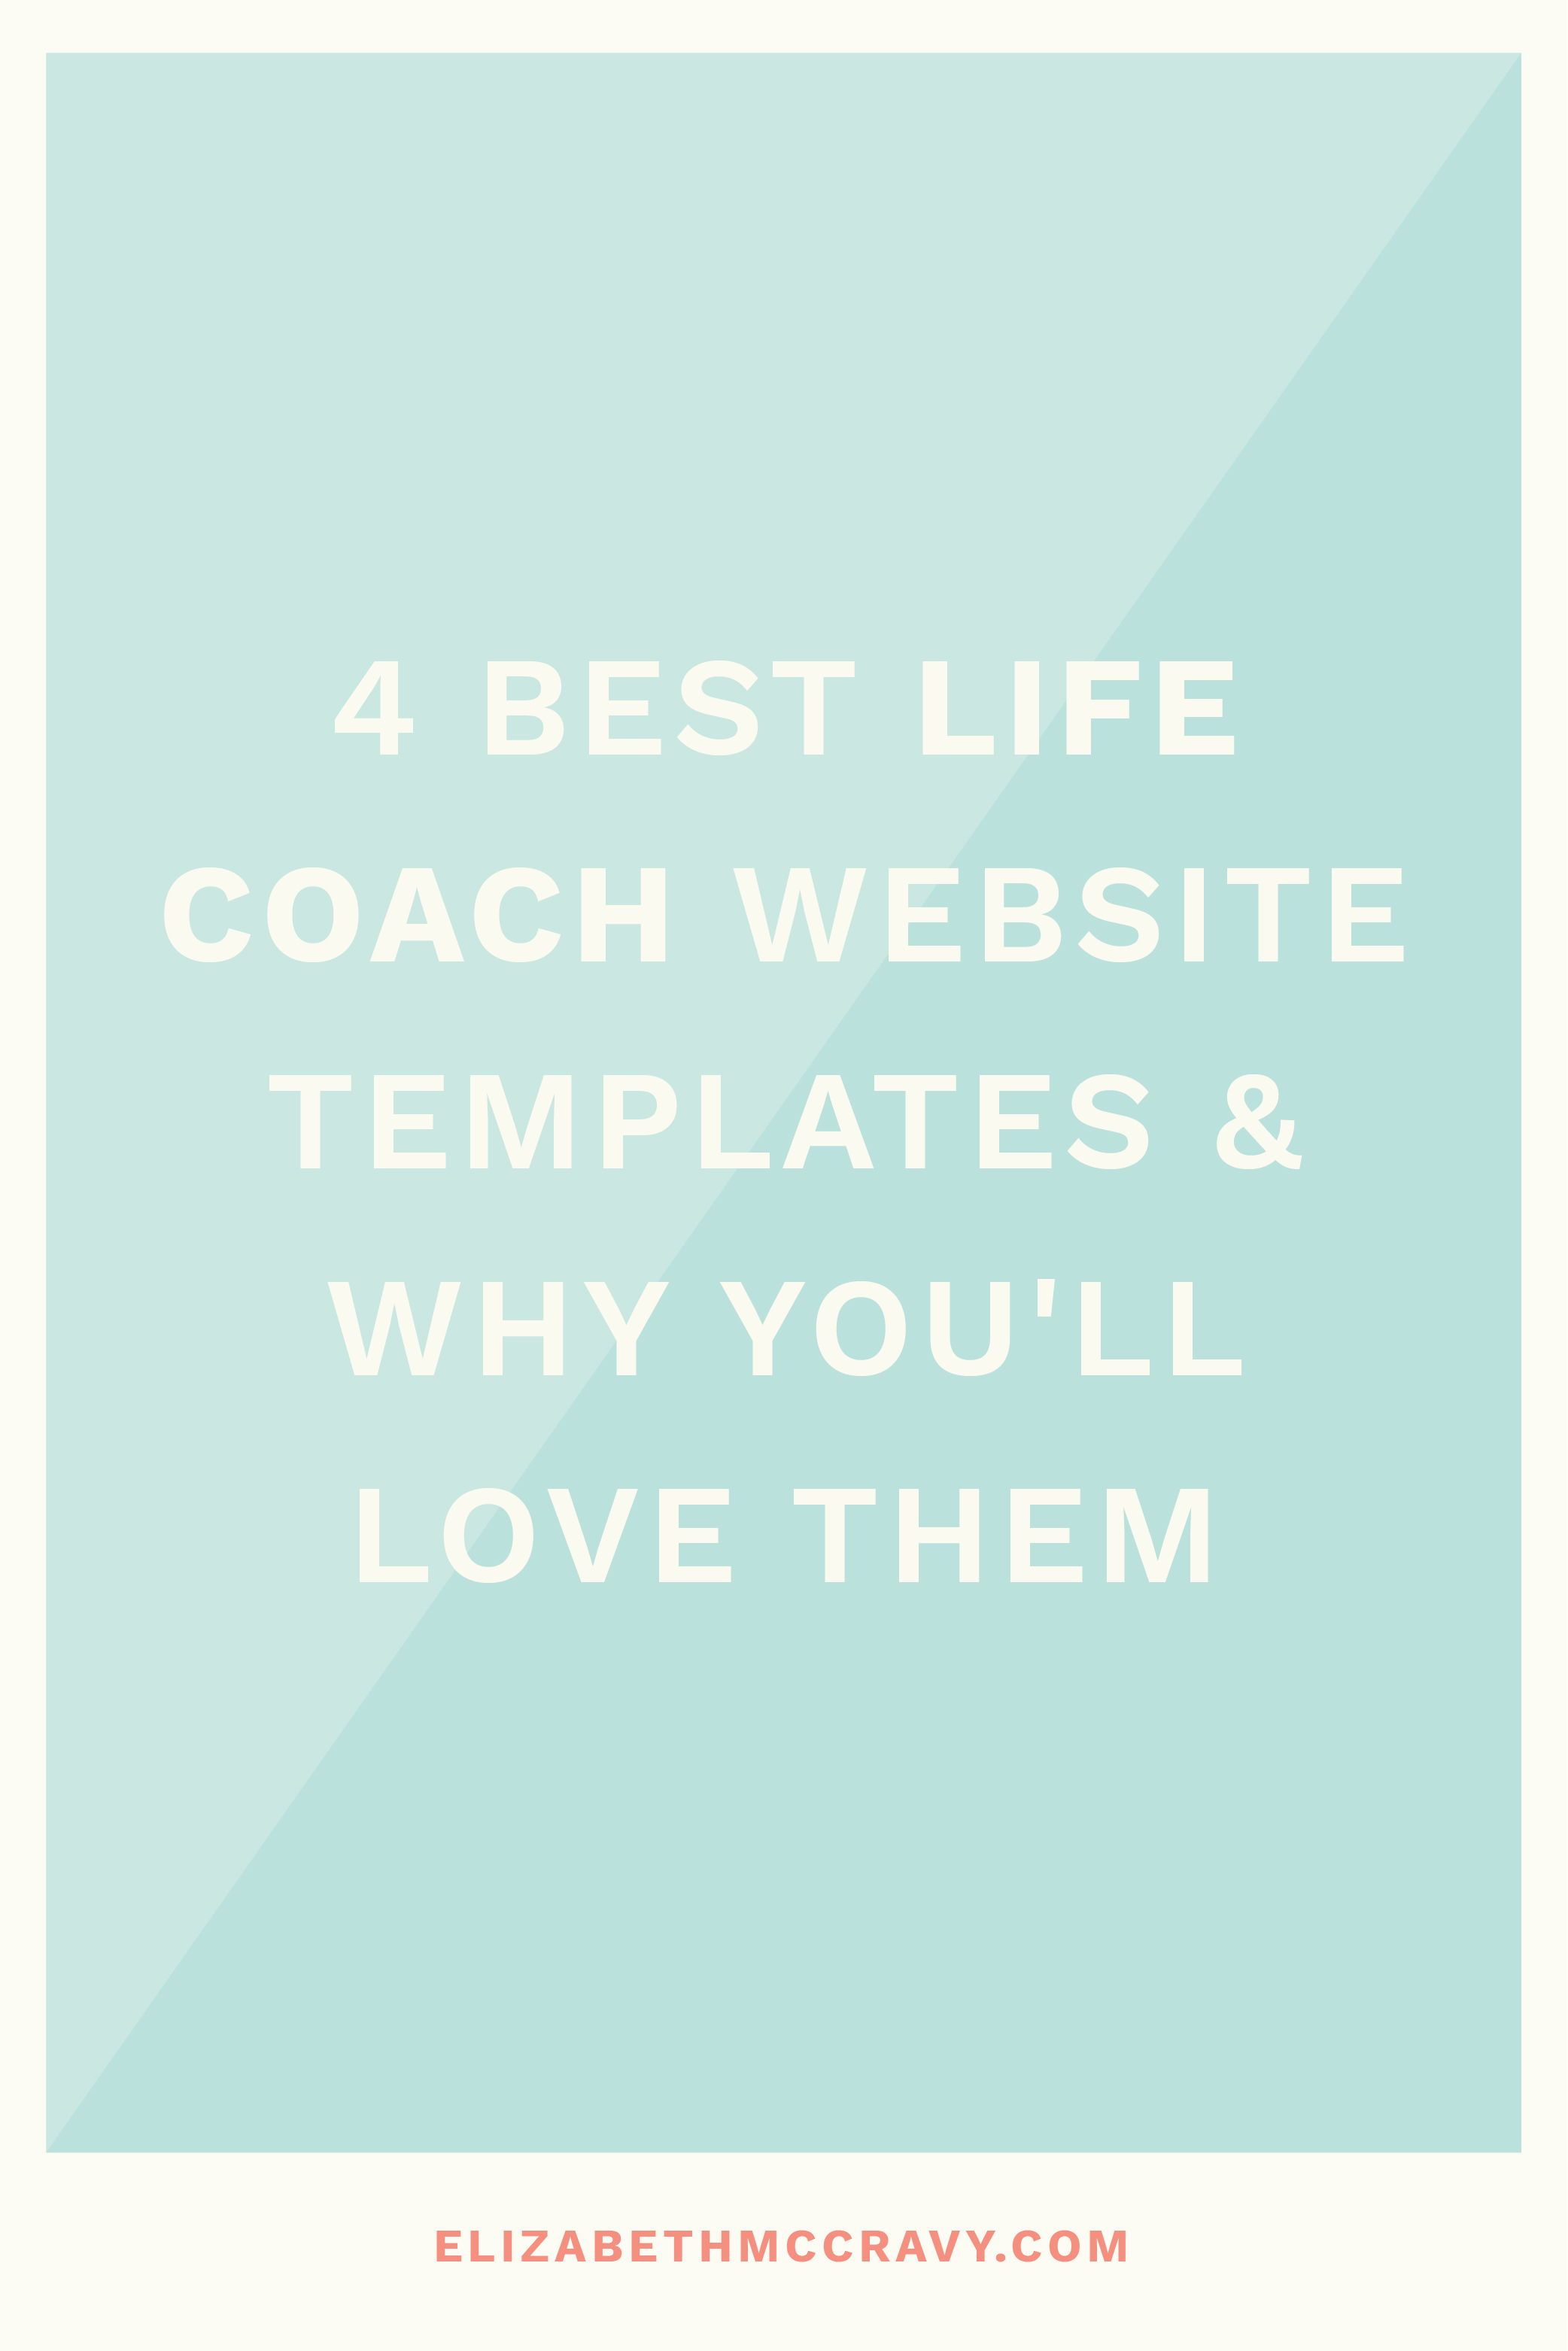 4 Premium Website Templates for Coaches that You'll Fall